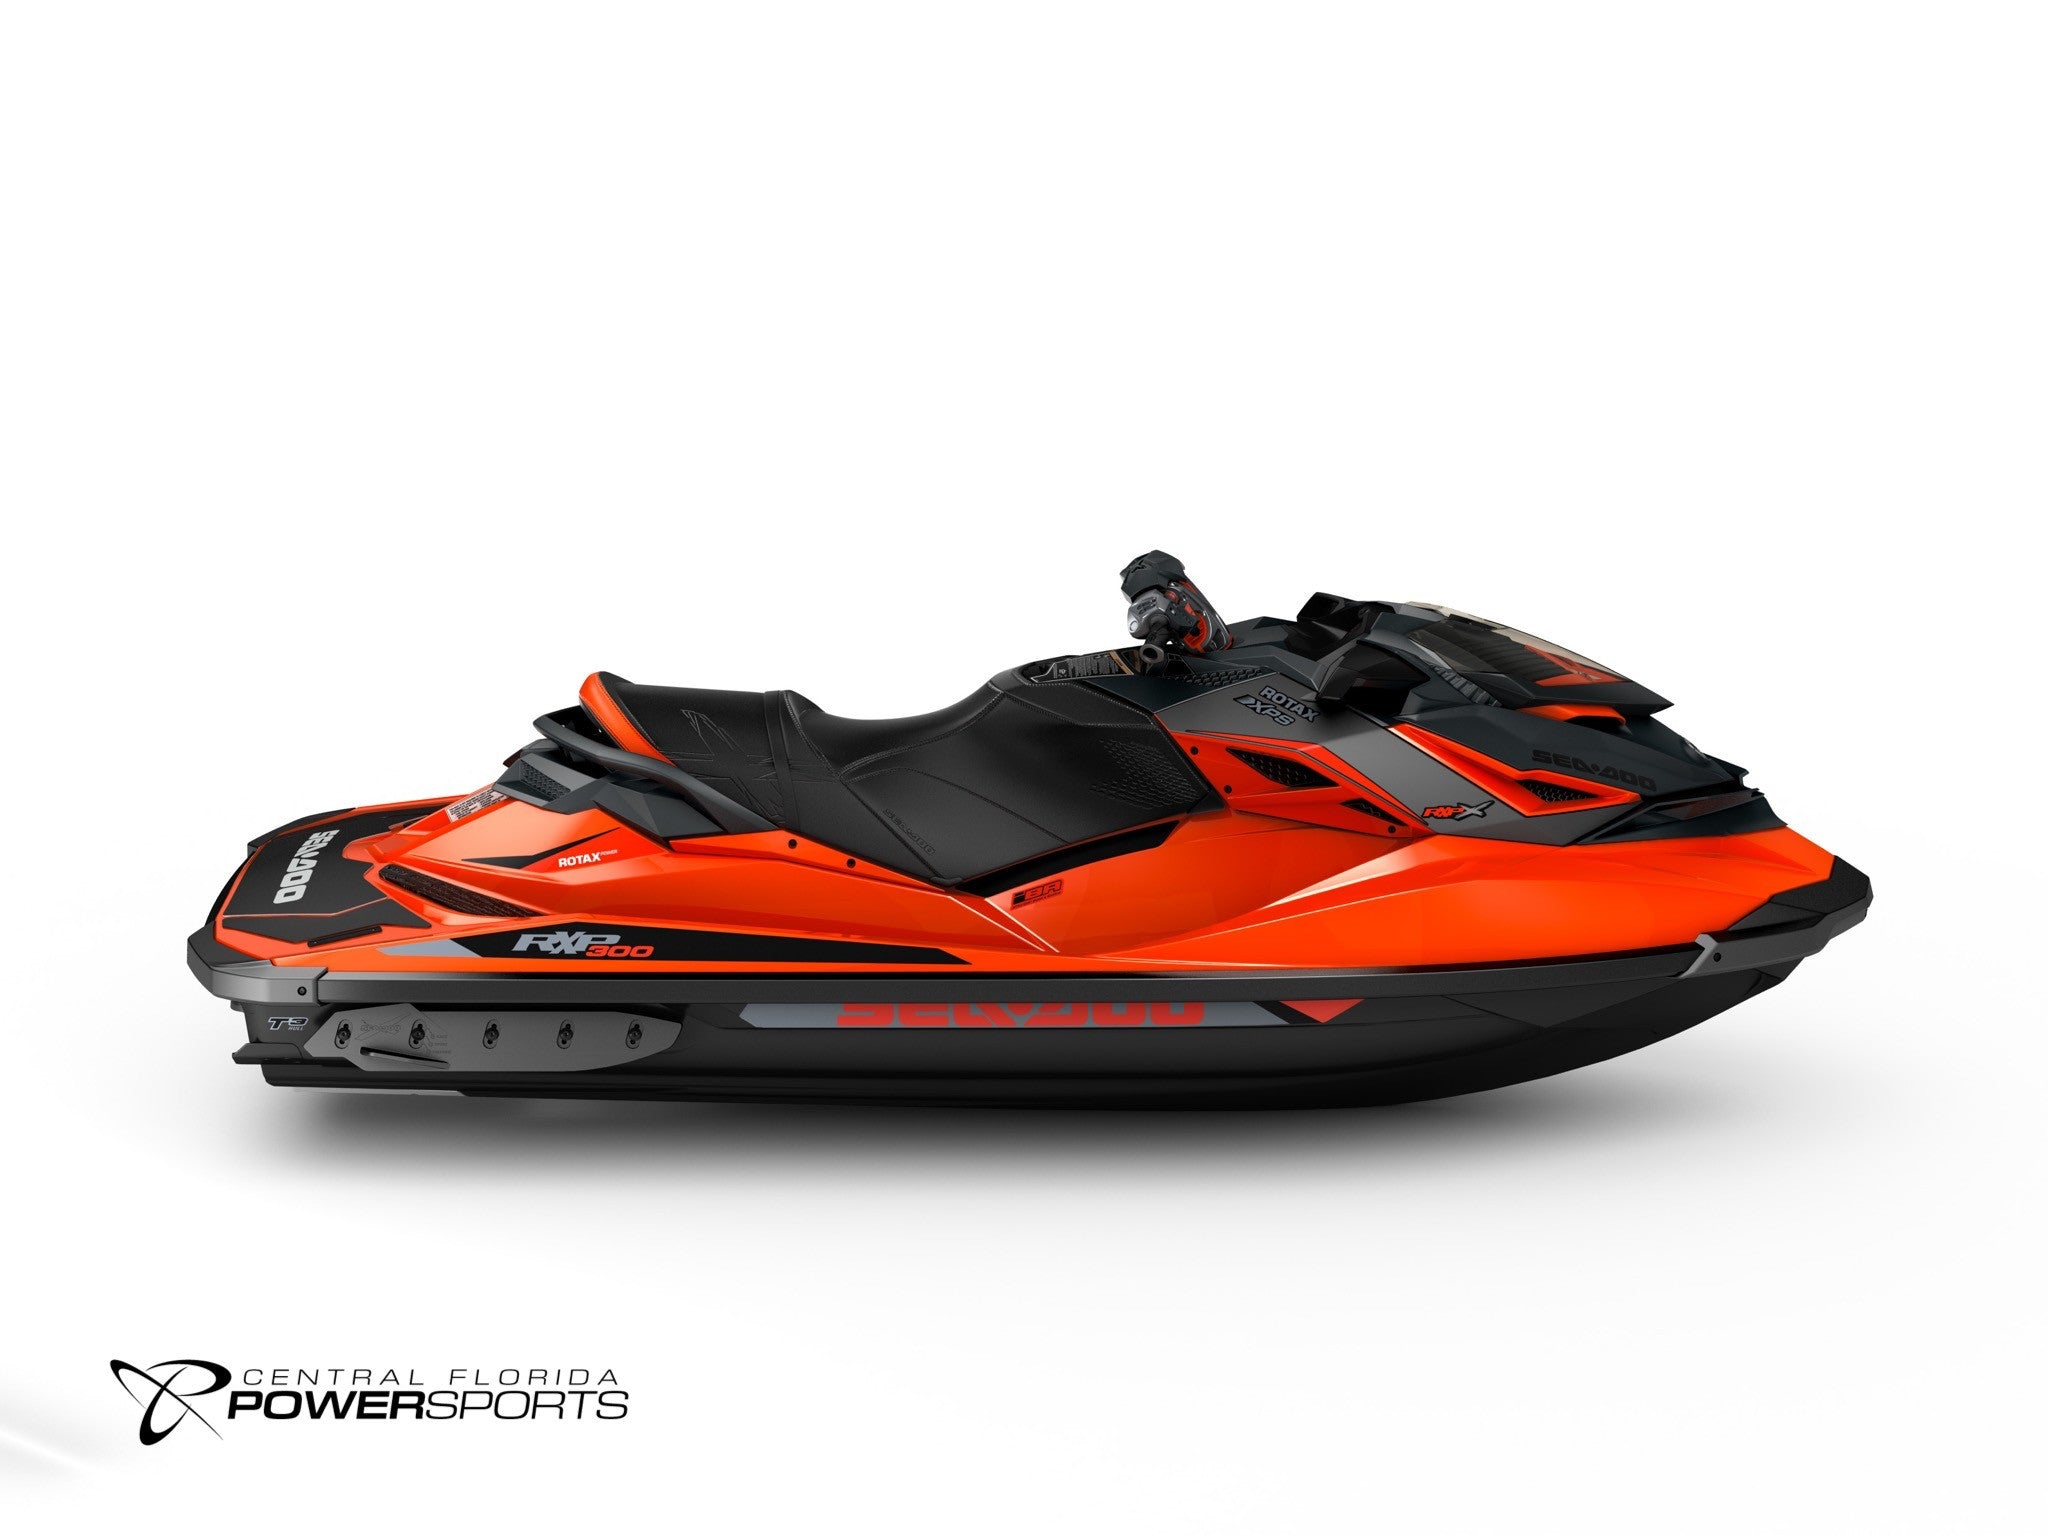 2017 Sea-Doo RXP-X 300 - PWC For Sale - Central Florida PowerSports ...